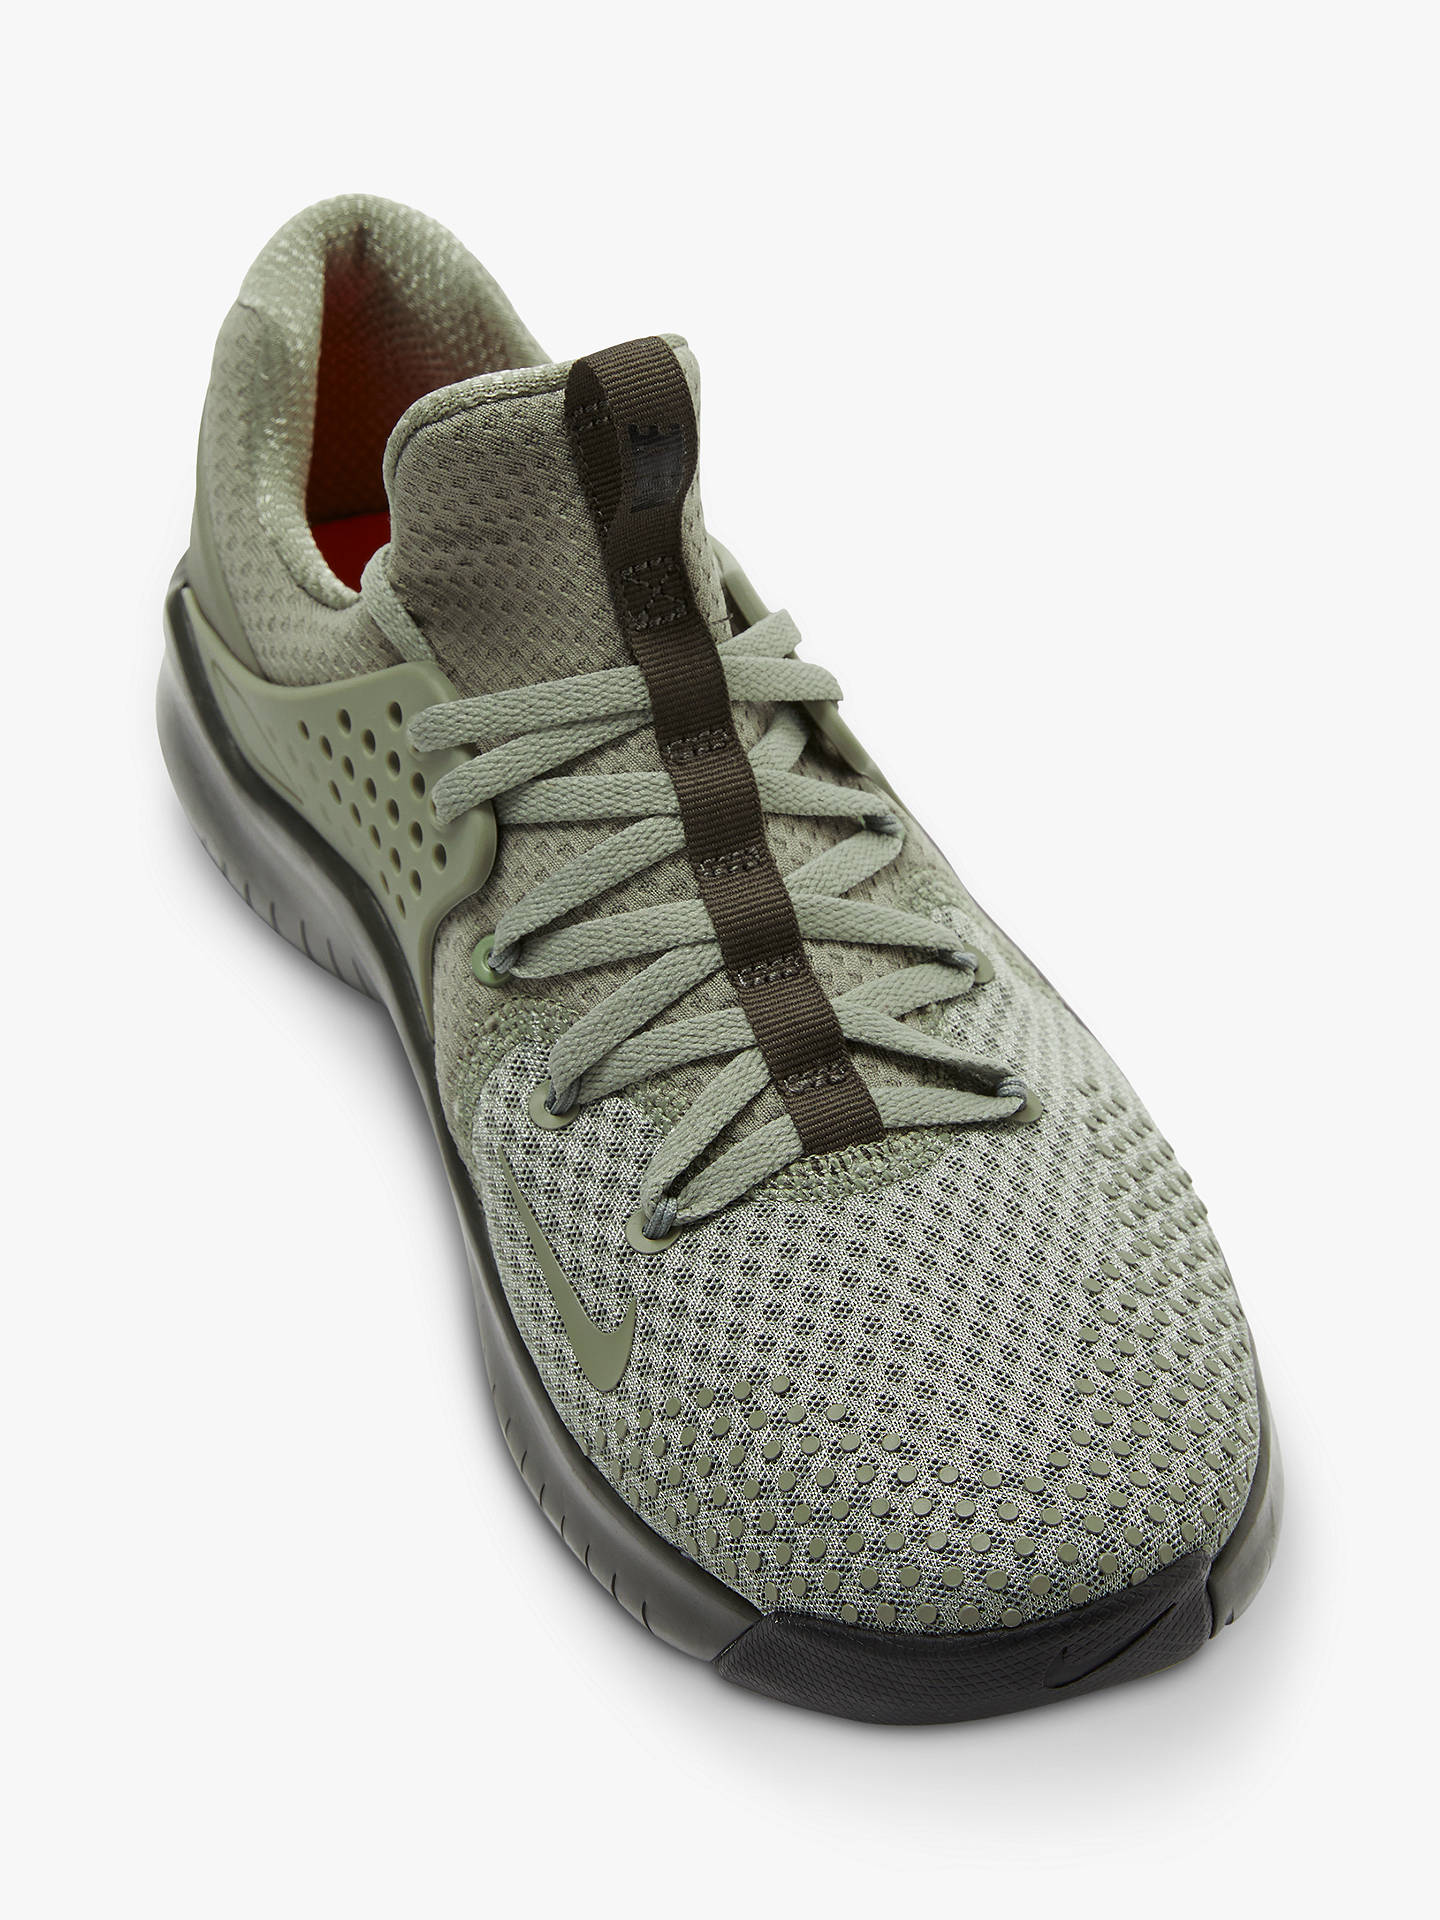 f5fc84159a92 ... Buy Nike Free Trainer v8 Men s Training Shoes